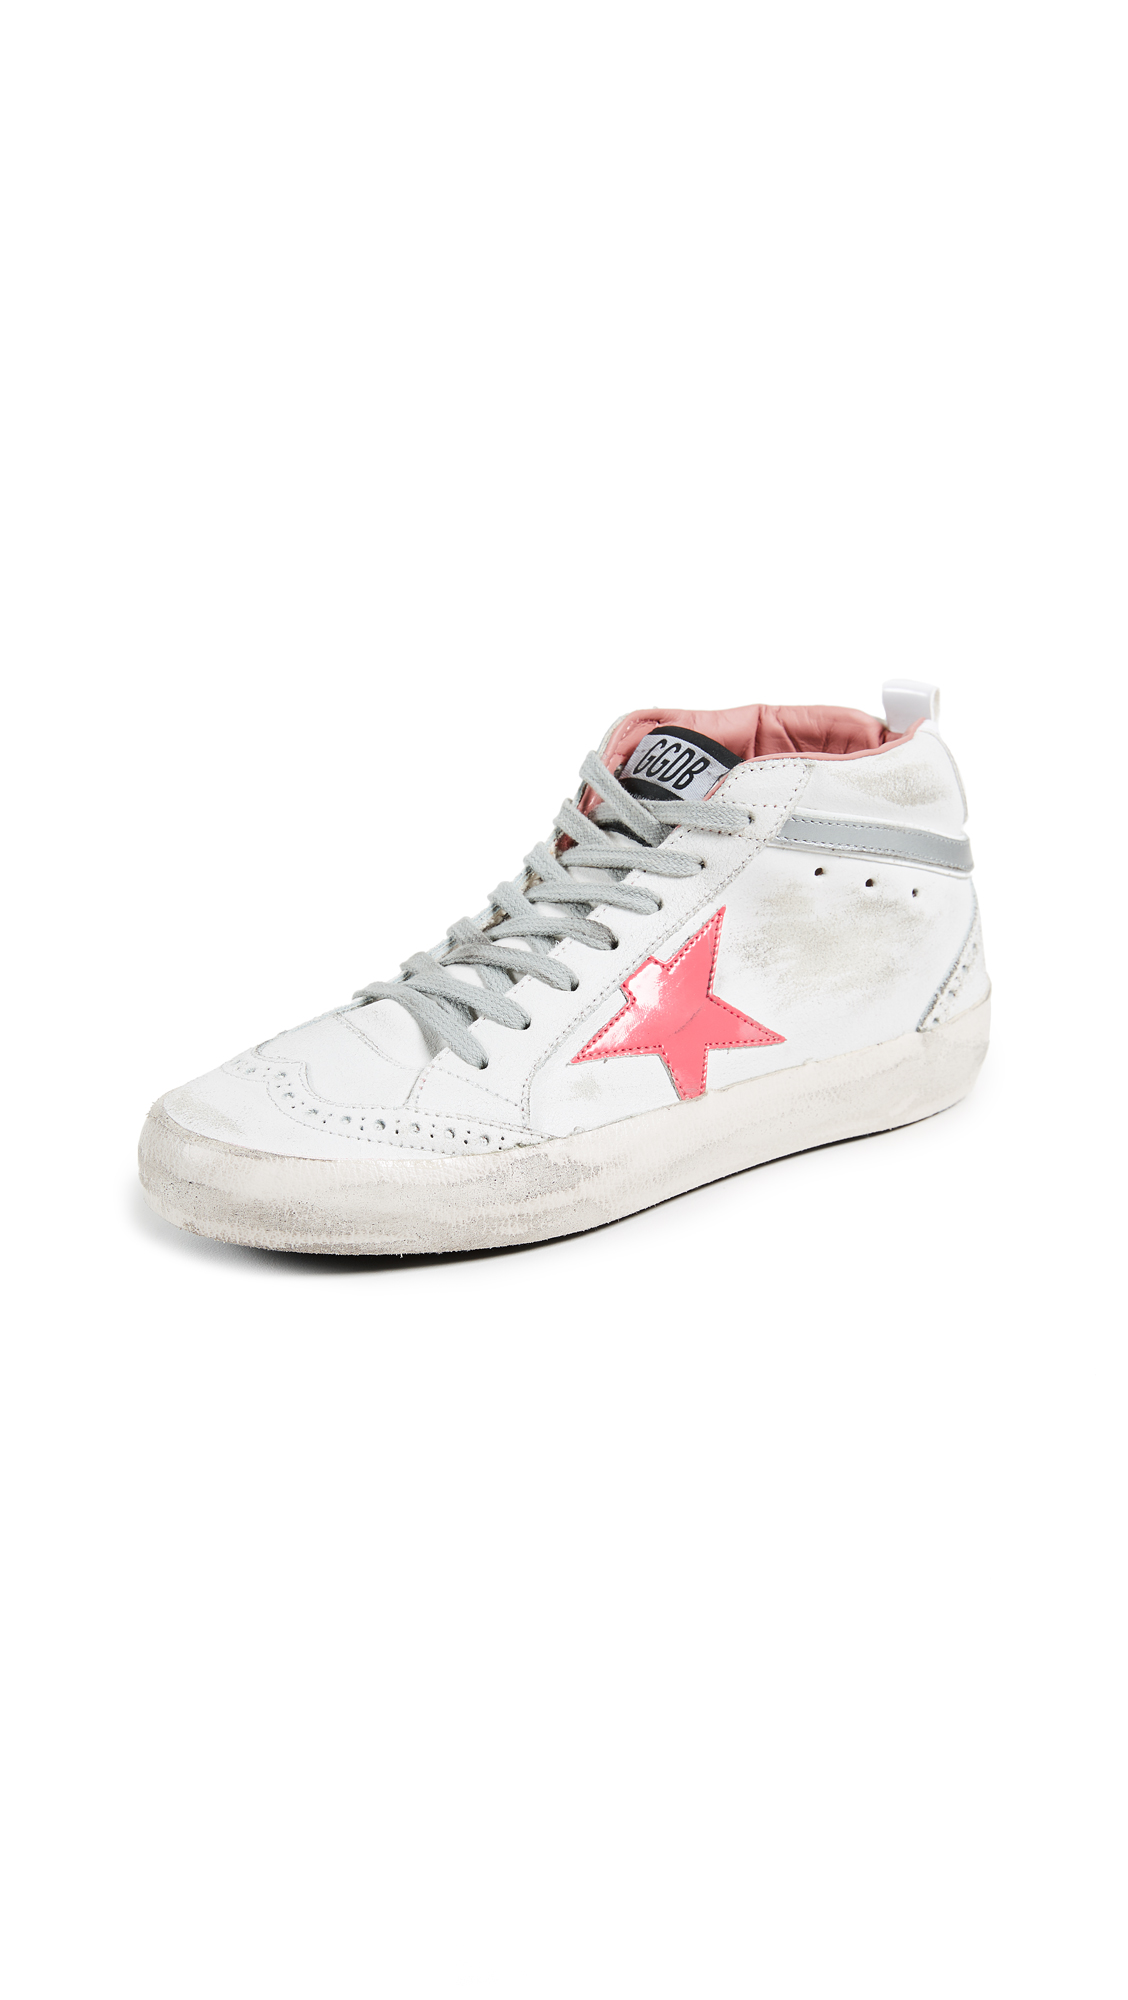 Golden Goose Mid Star Sneakers - White/Used Pink